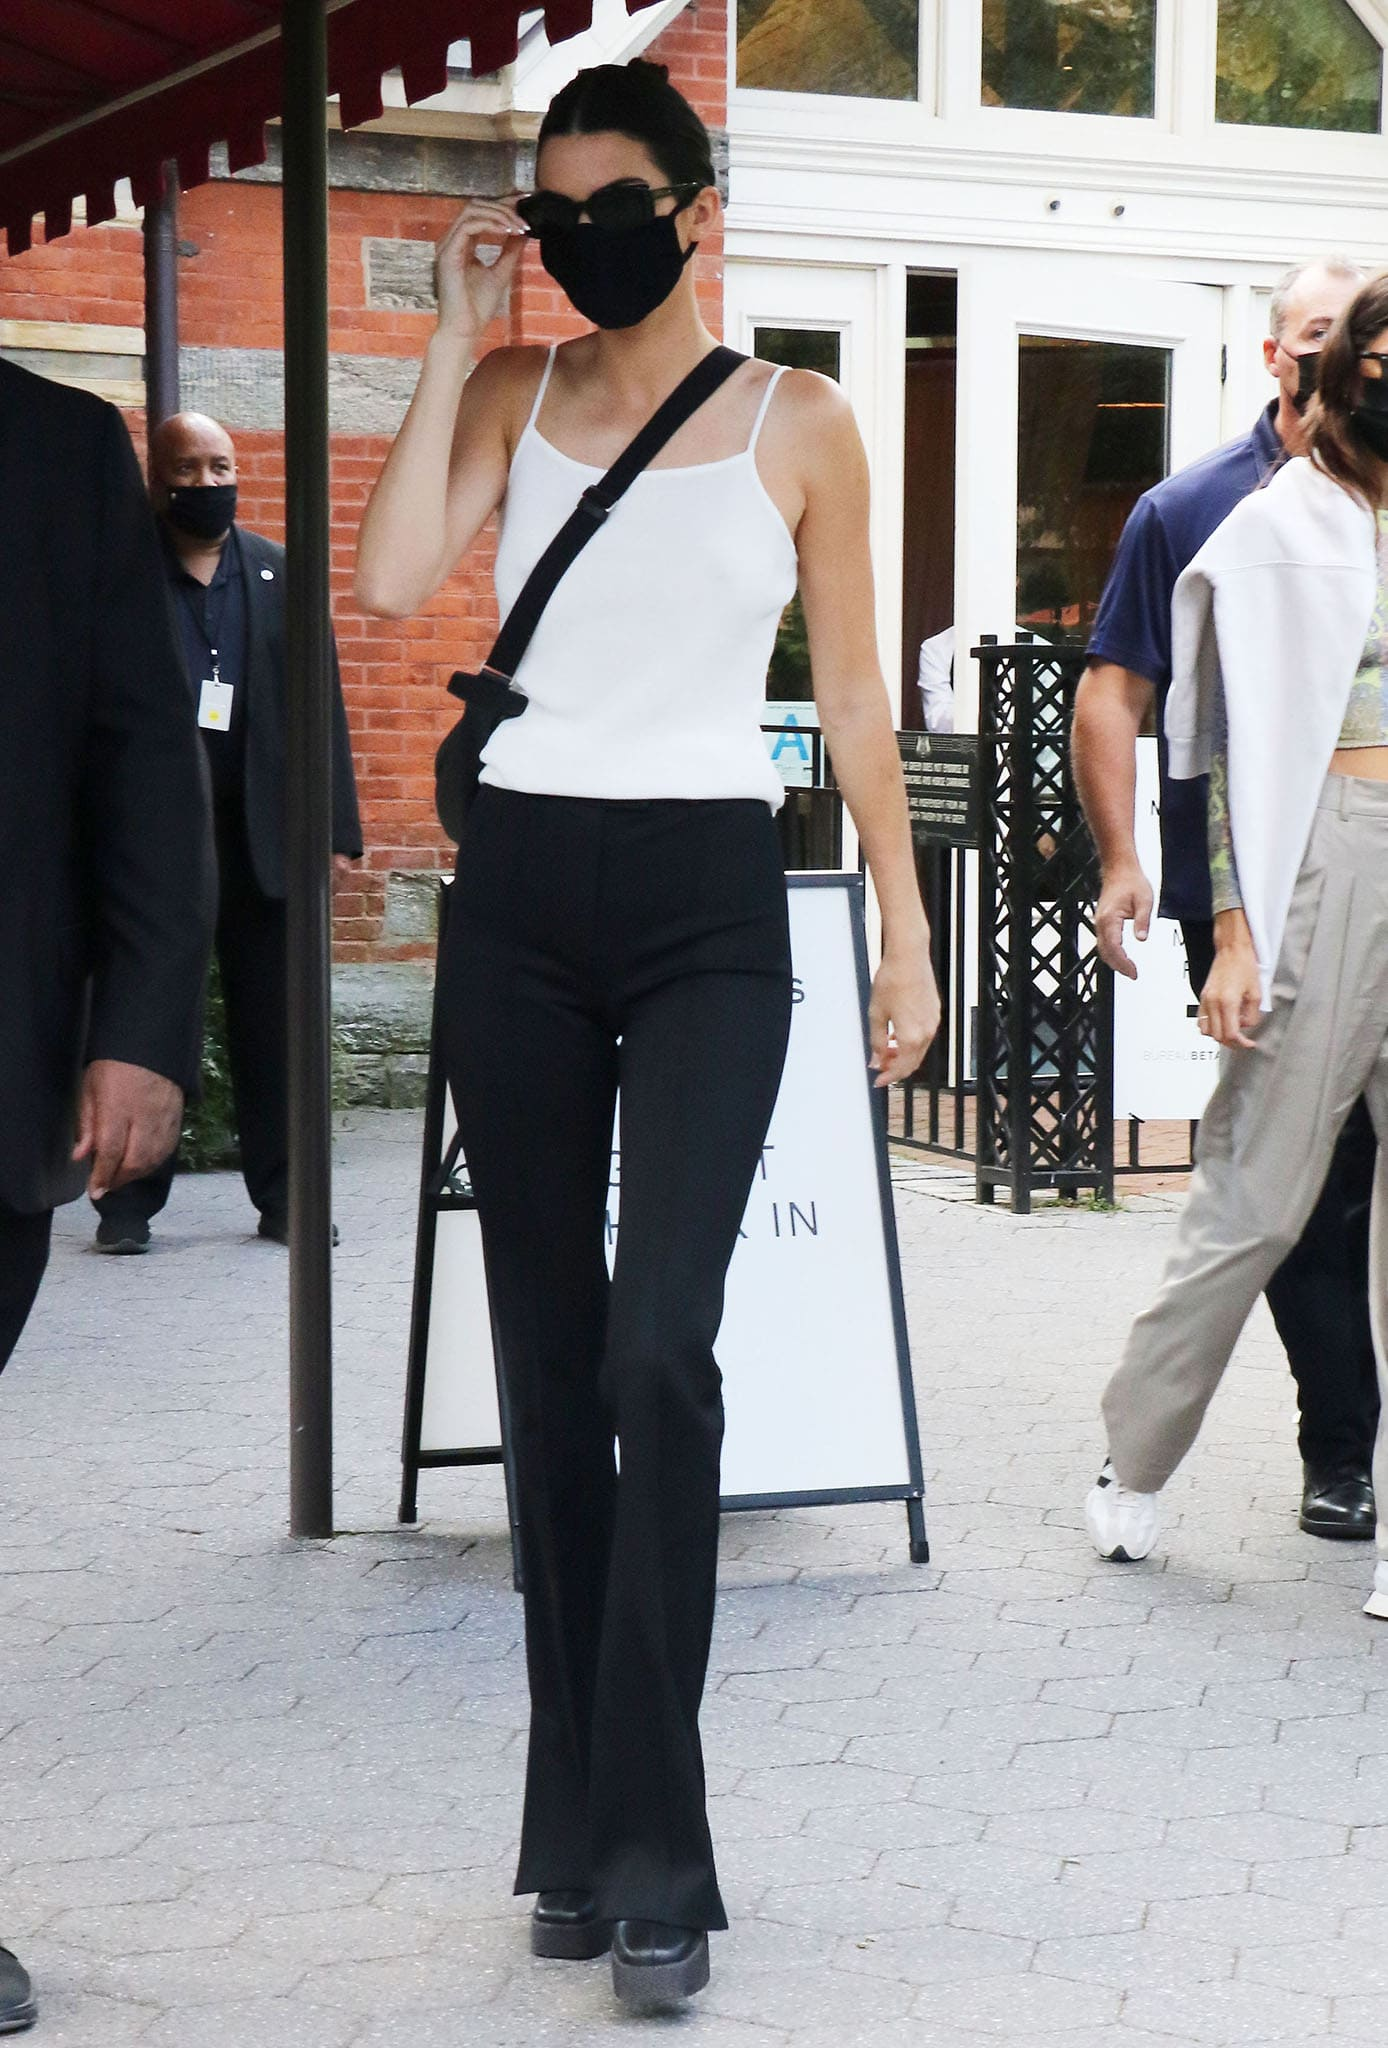 Kendall Jenner at the NYFW S/S 2022 Michael Kors fashion show at Tavern On The Green on September 10, 2021